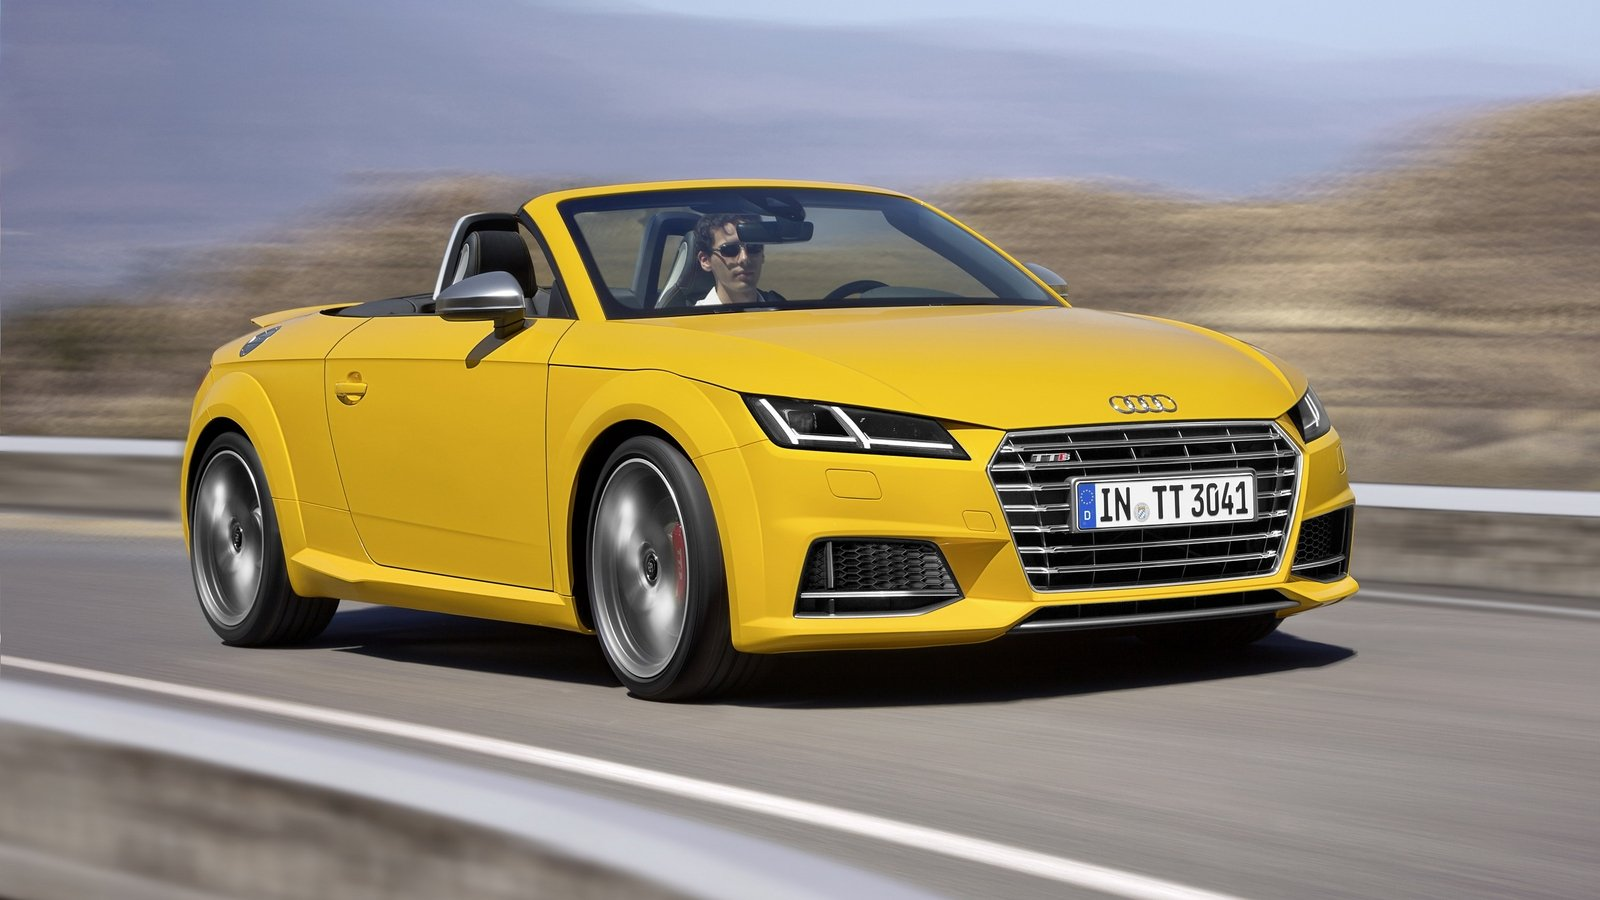 Audi Hardtop Convertible Info Cars Review as well Audi Tt Roadster Trunk further Audi Tt T Quattro Roadster Pic X together with Audi Tt Door Roadster Quattro Manual Trunk M besides Audi Tt Roadster X W. on 2016 audi tt roadster convertible